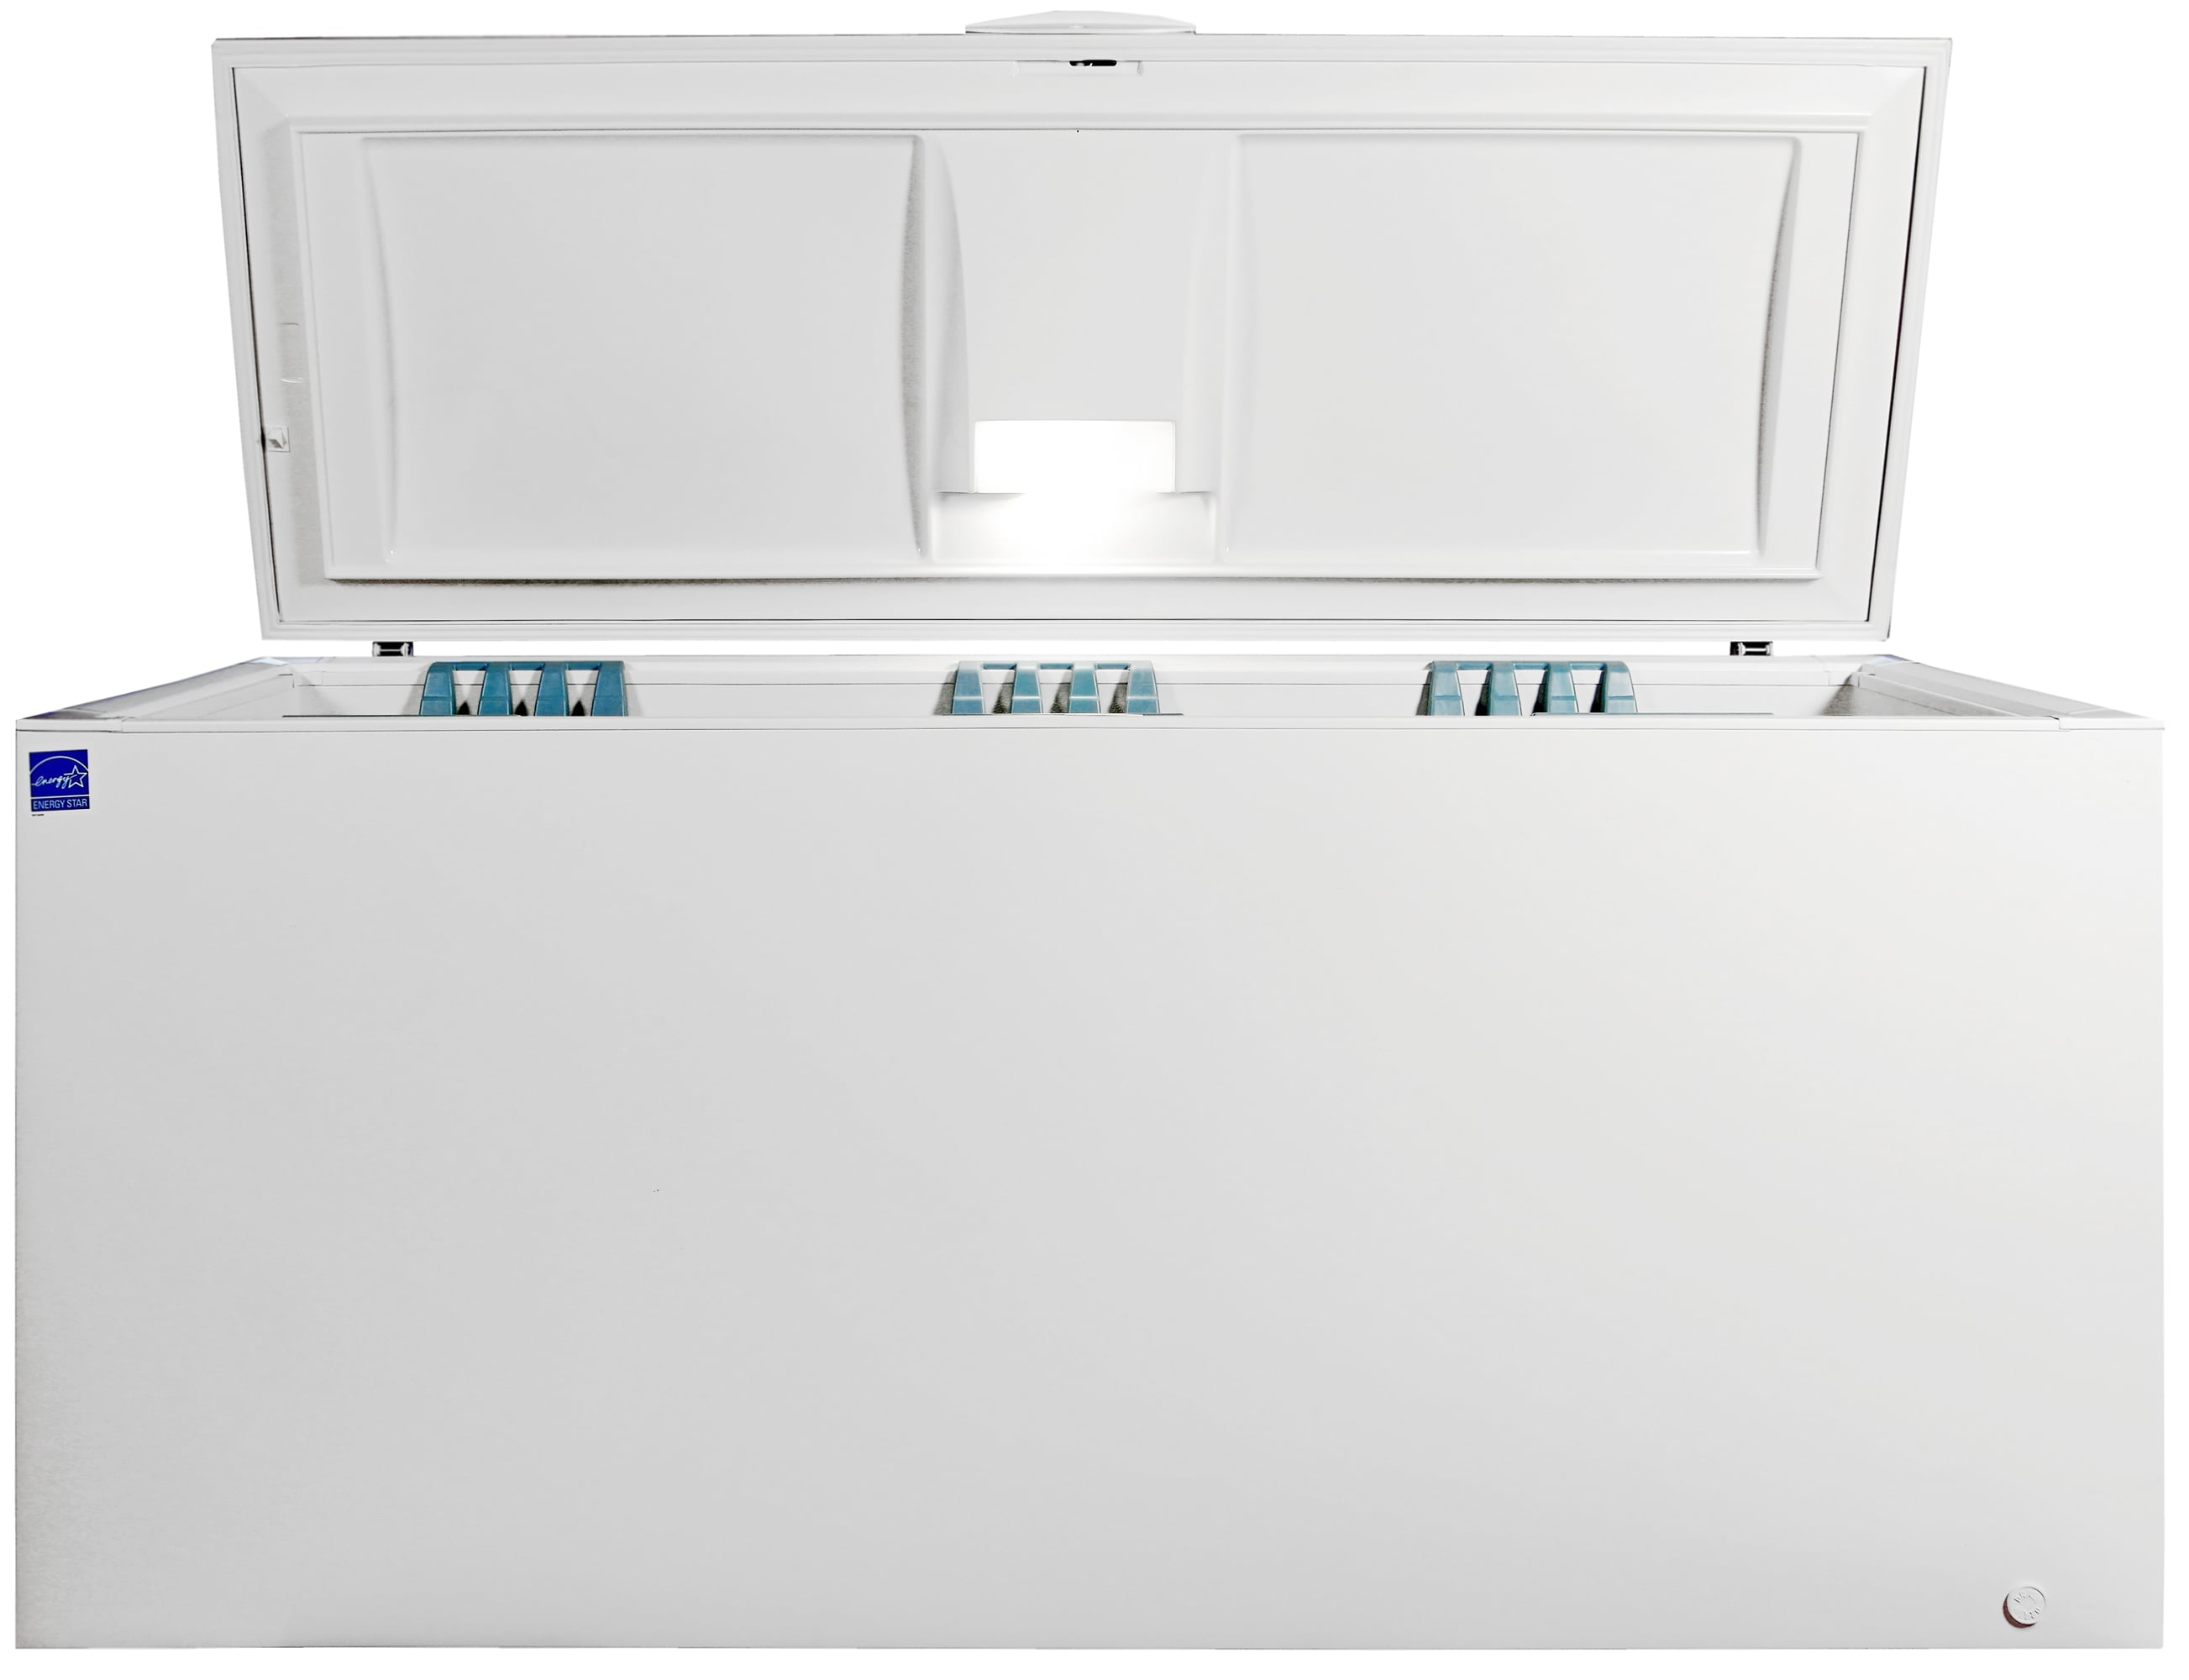 The light—while laughably small compared to the width of the Frigidaire Gallery FGCH25M8LW—does provide some small illumination.